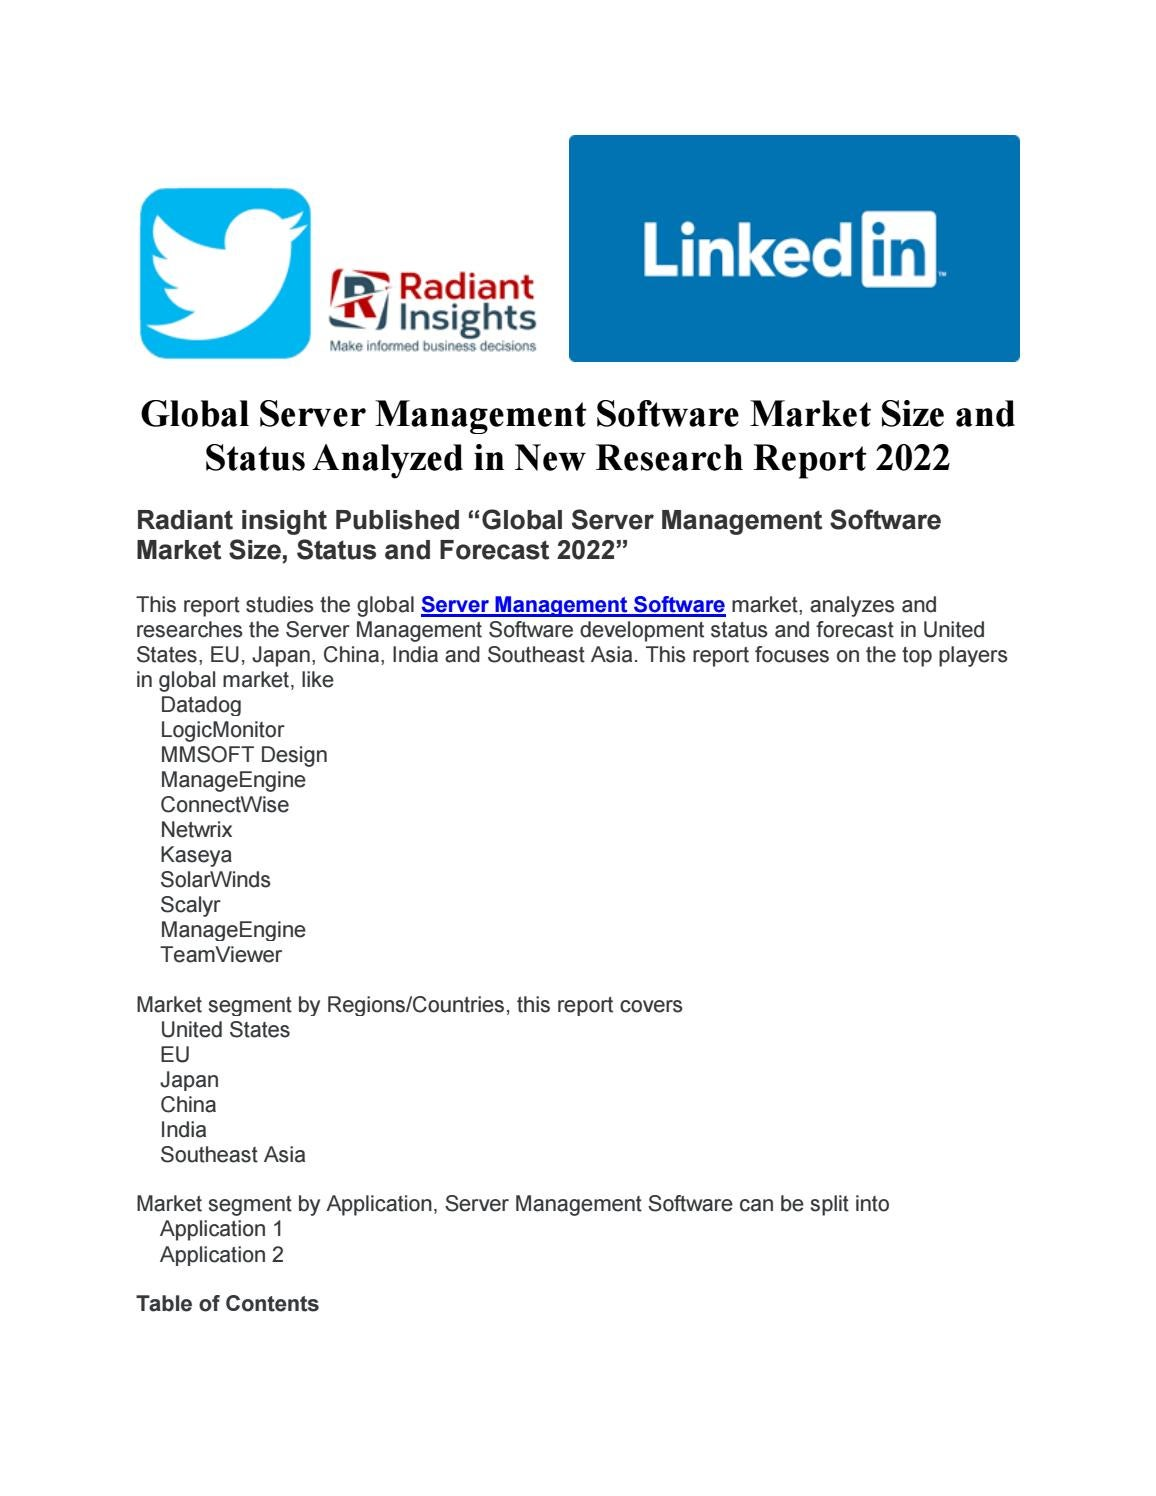 Global server management software market size and status analyzed in